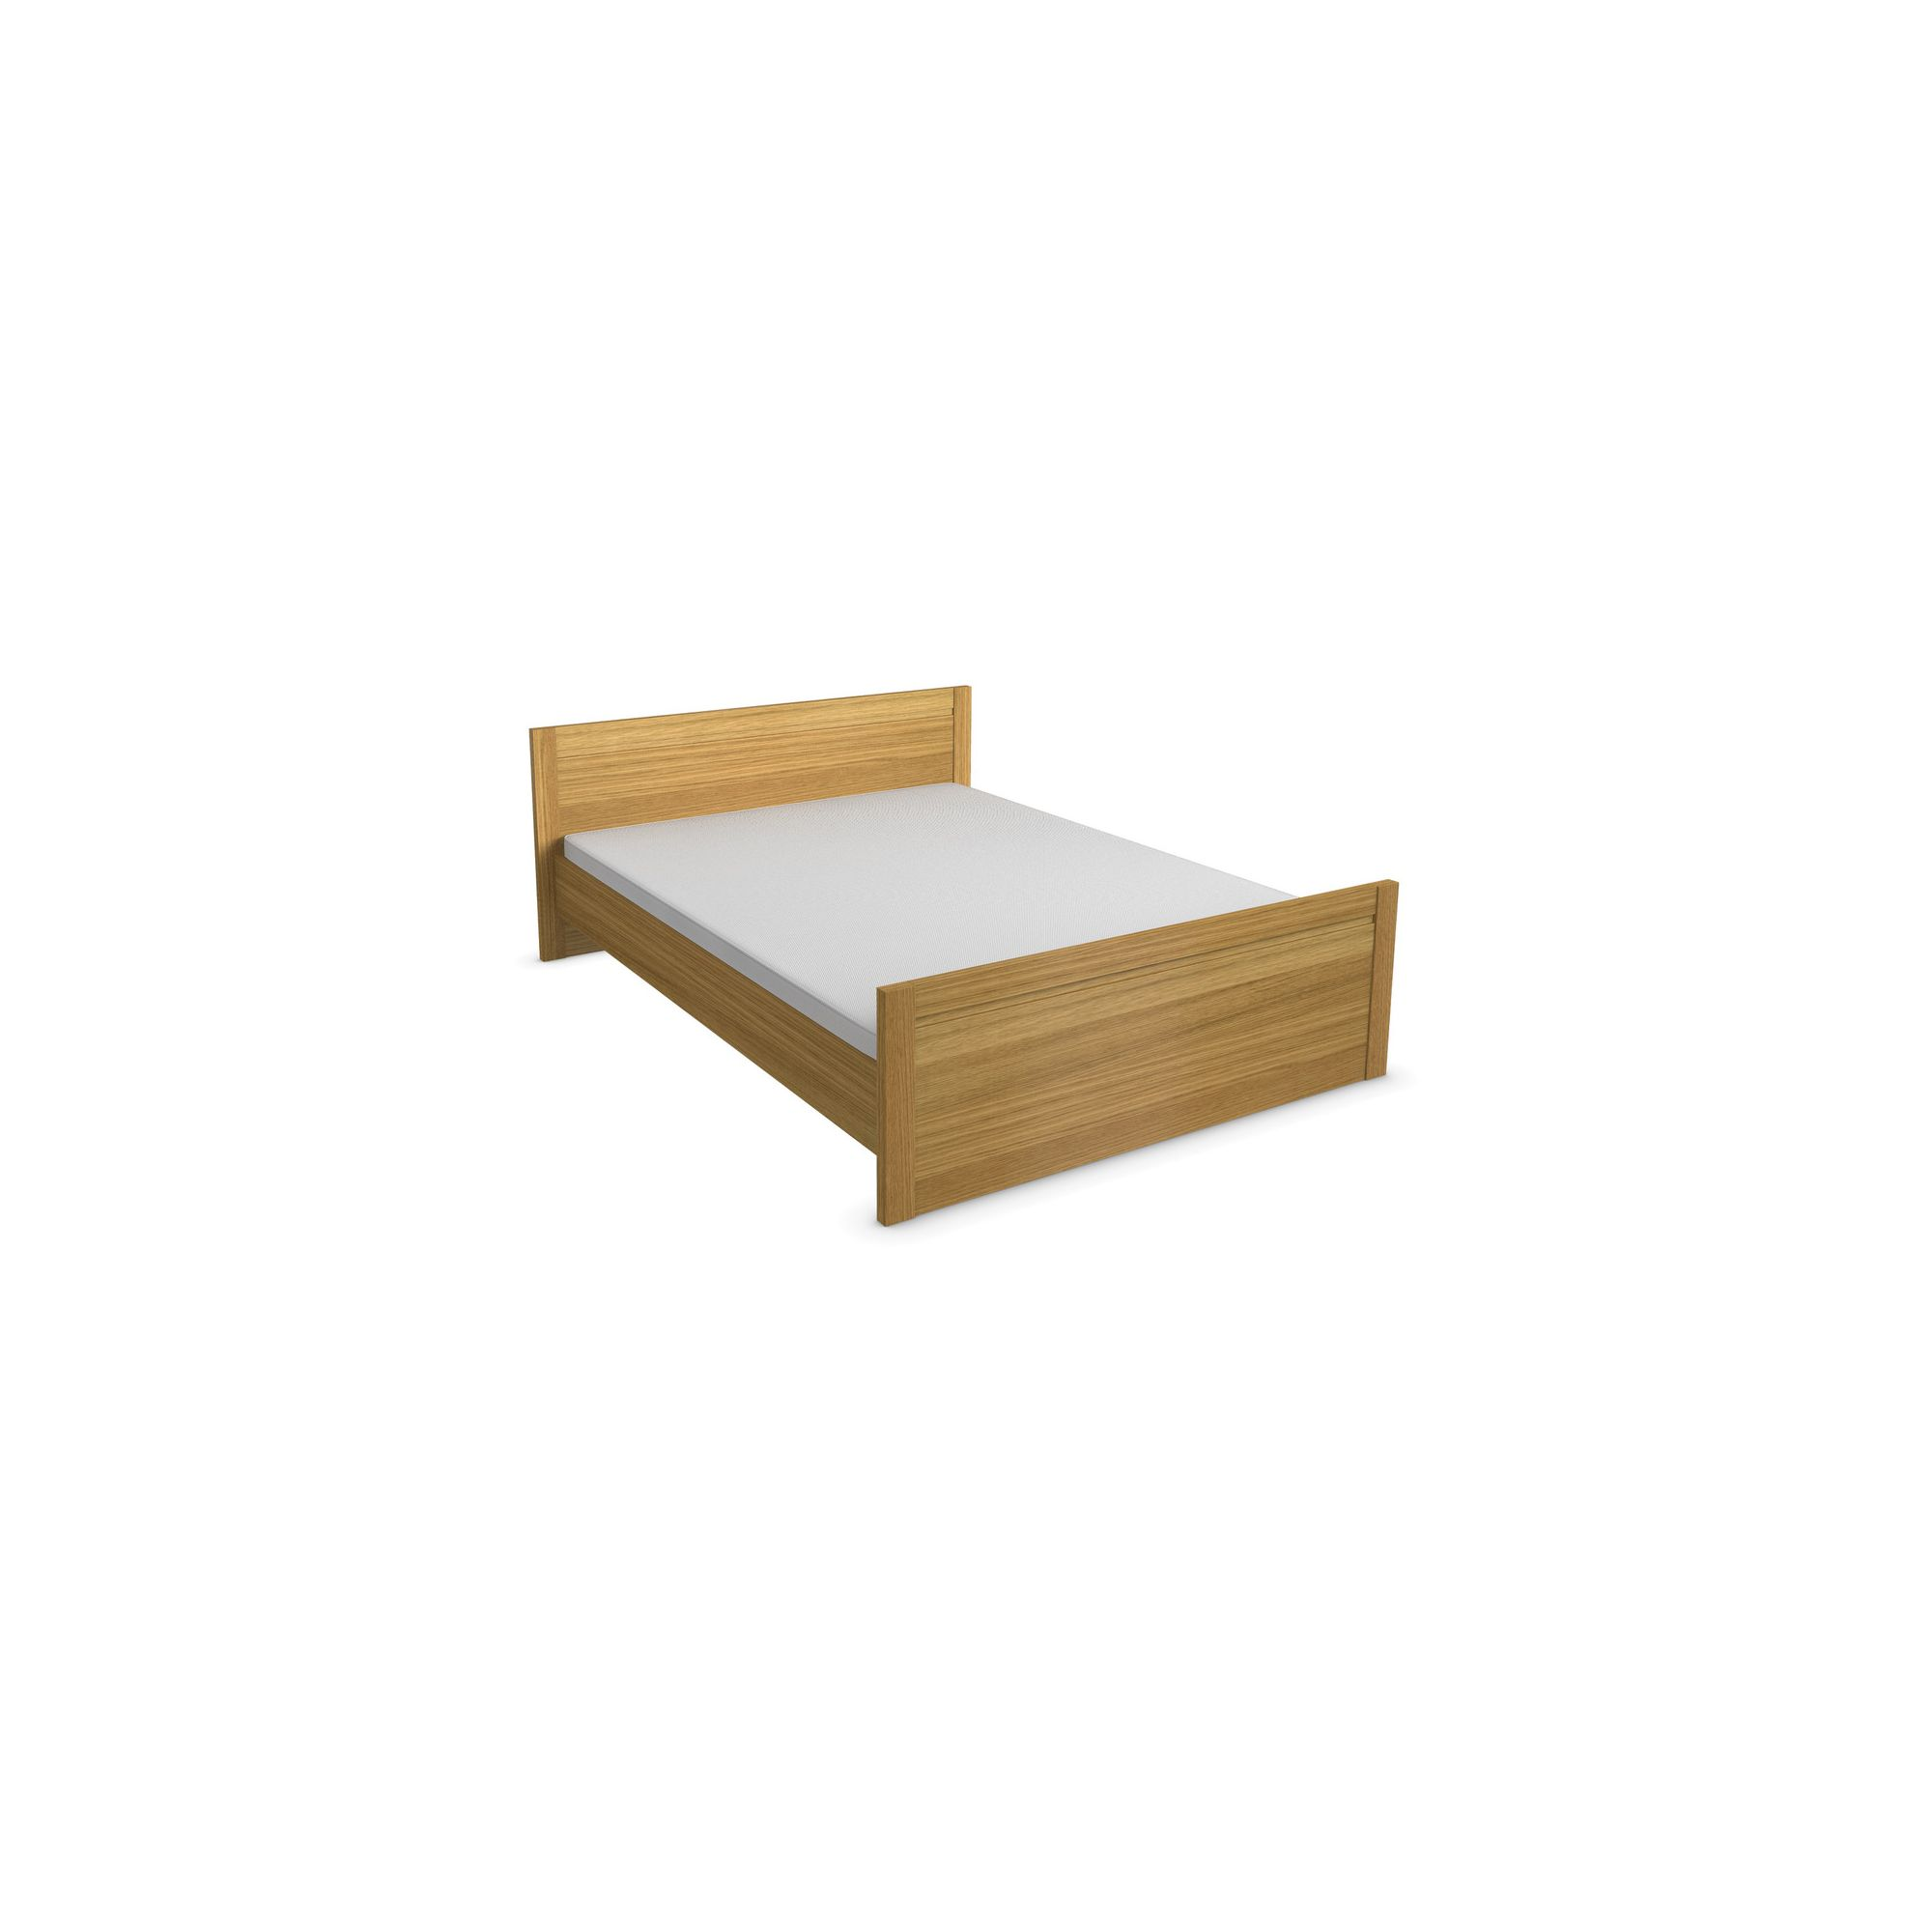 Urbane Designs Tango Bed Frame - Double - Oak at Tescos Direct